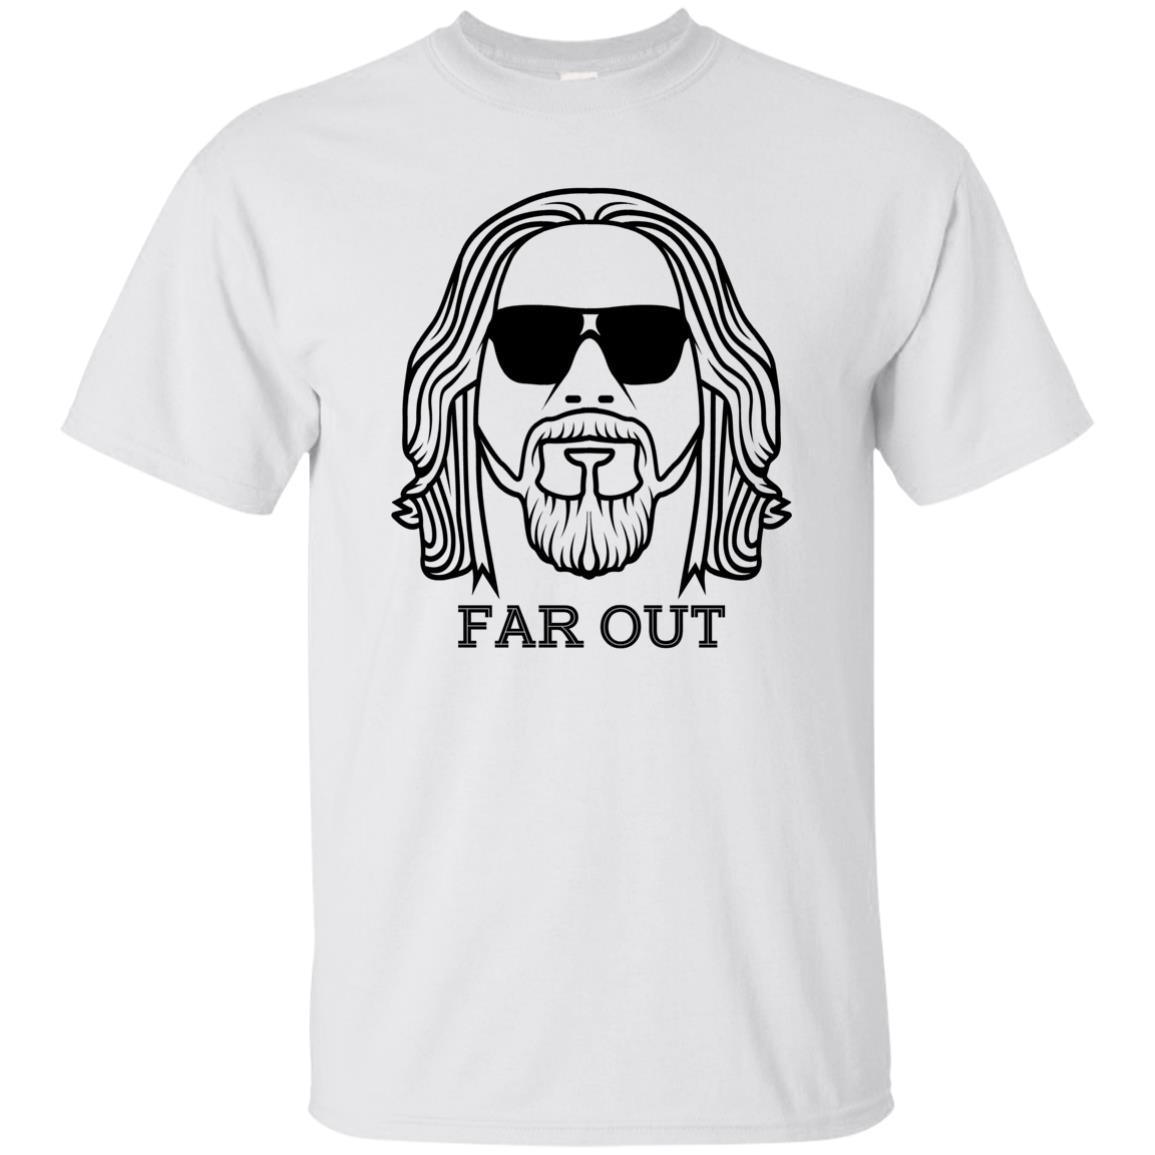 T-Shirts - Far Out Unisex Tee